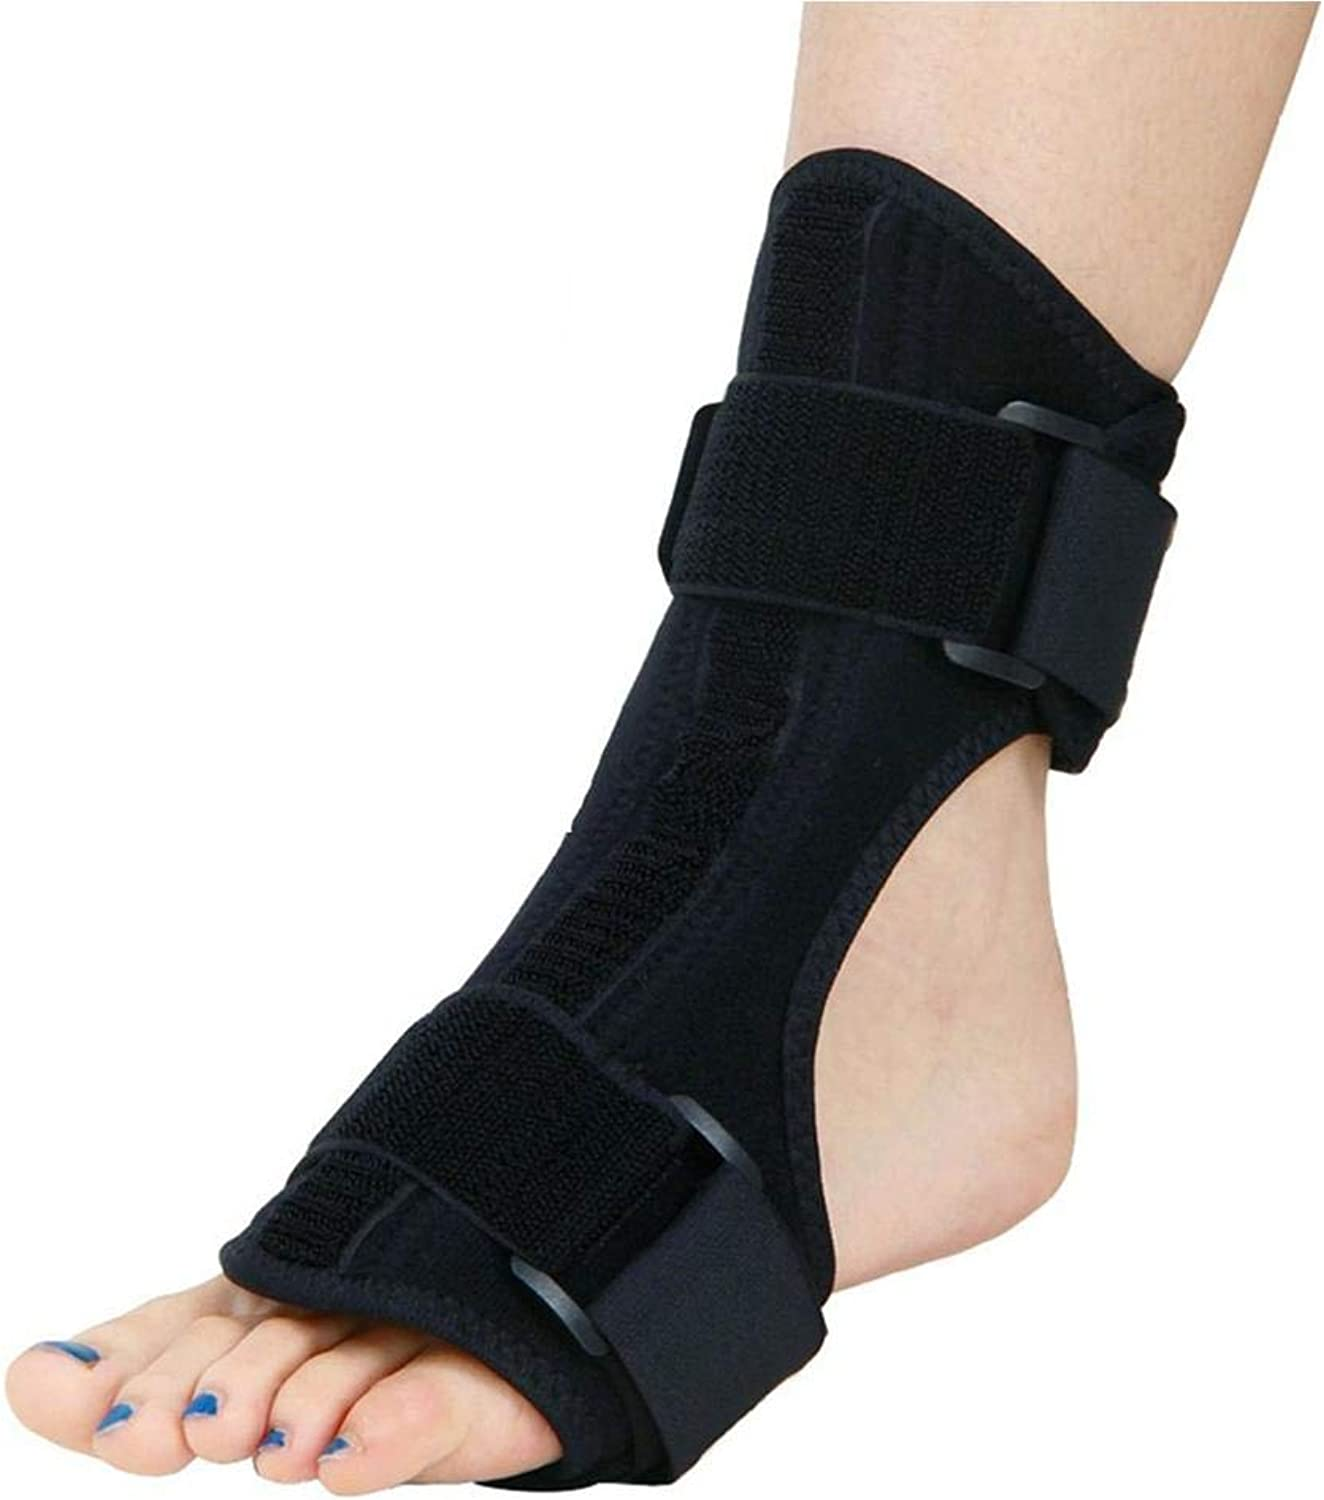 Ankle Brace Foot Support,Ankle Orthosis Wrap Breathable Sleeve Stabilizer Adjustable Rehabilitation for Running, Basketball, Injury Recovery, Sprains,Pain Relief Plantar Fasciitis,Swelling